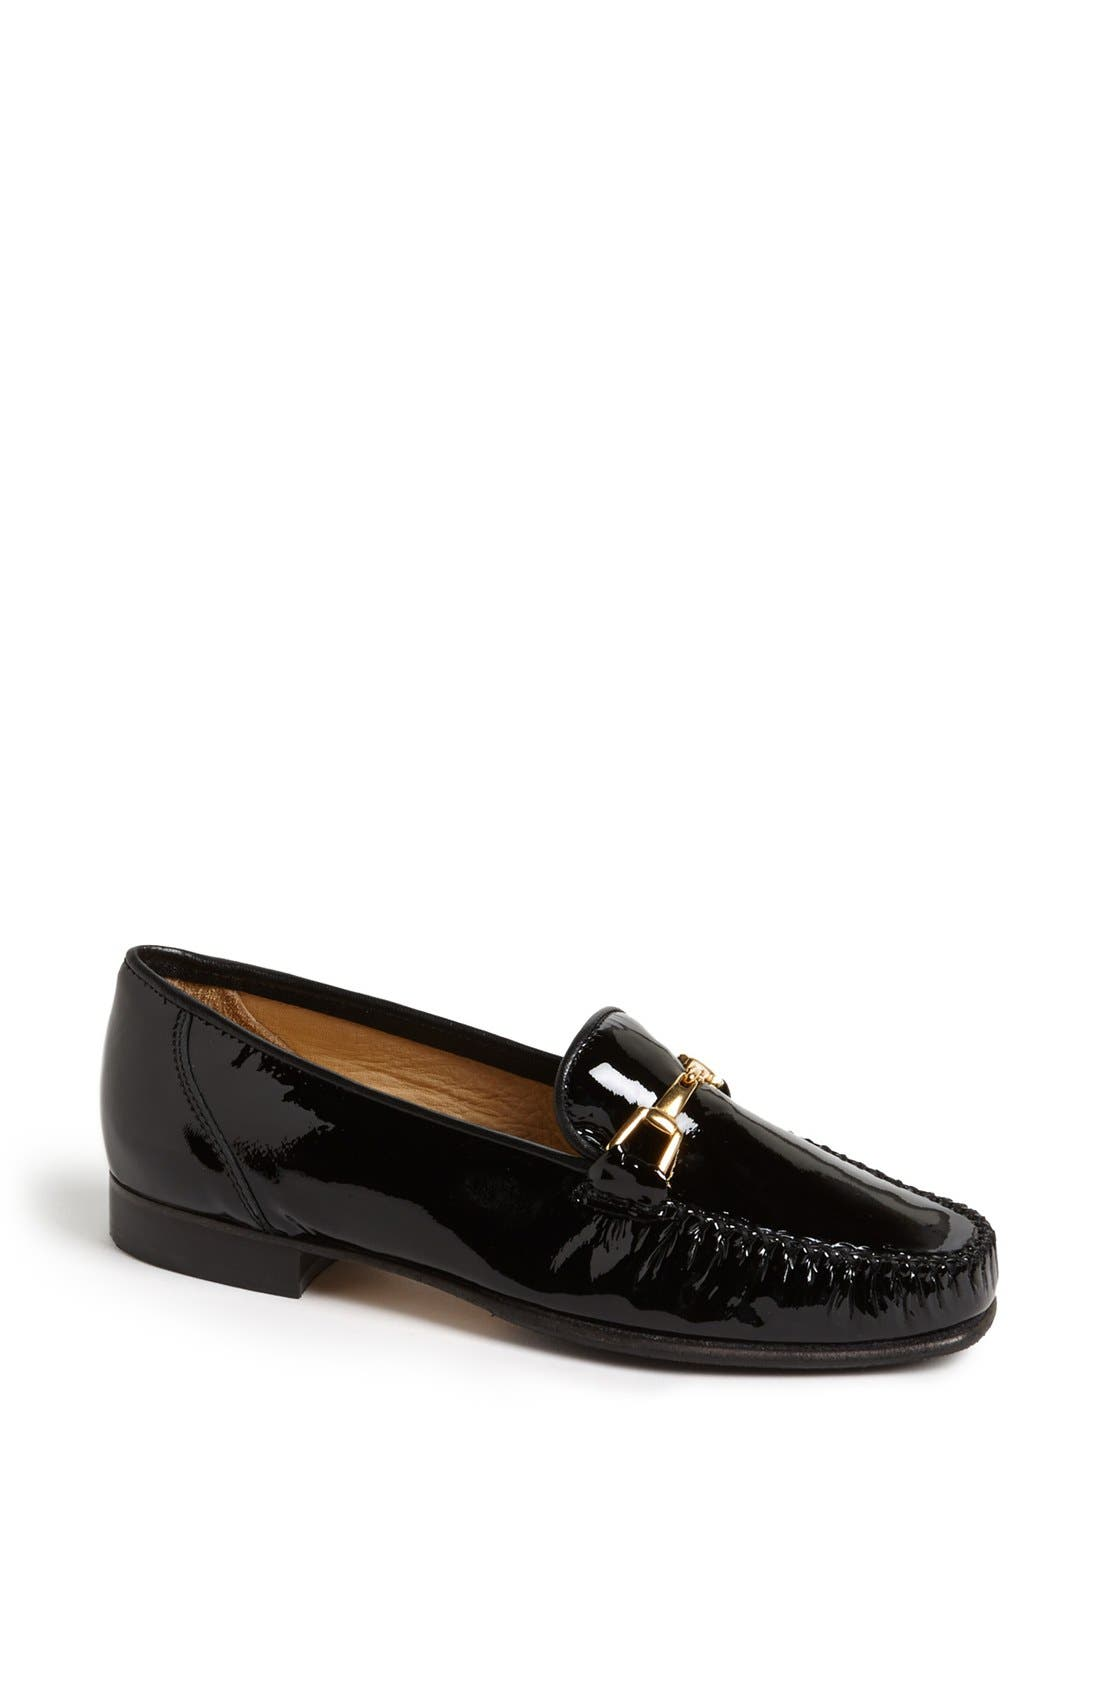 Alternate Image 1 Selected - Carvela Kurt Geiger 'Mariner' Patent Leather Flat